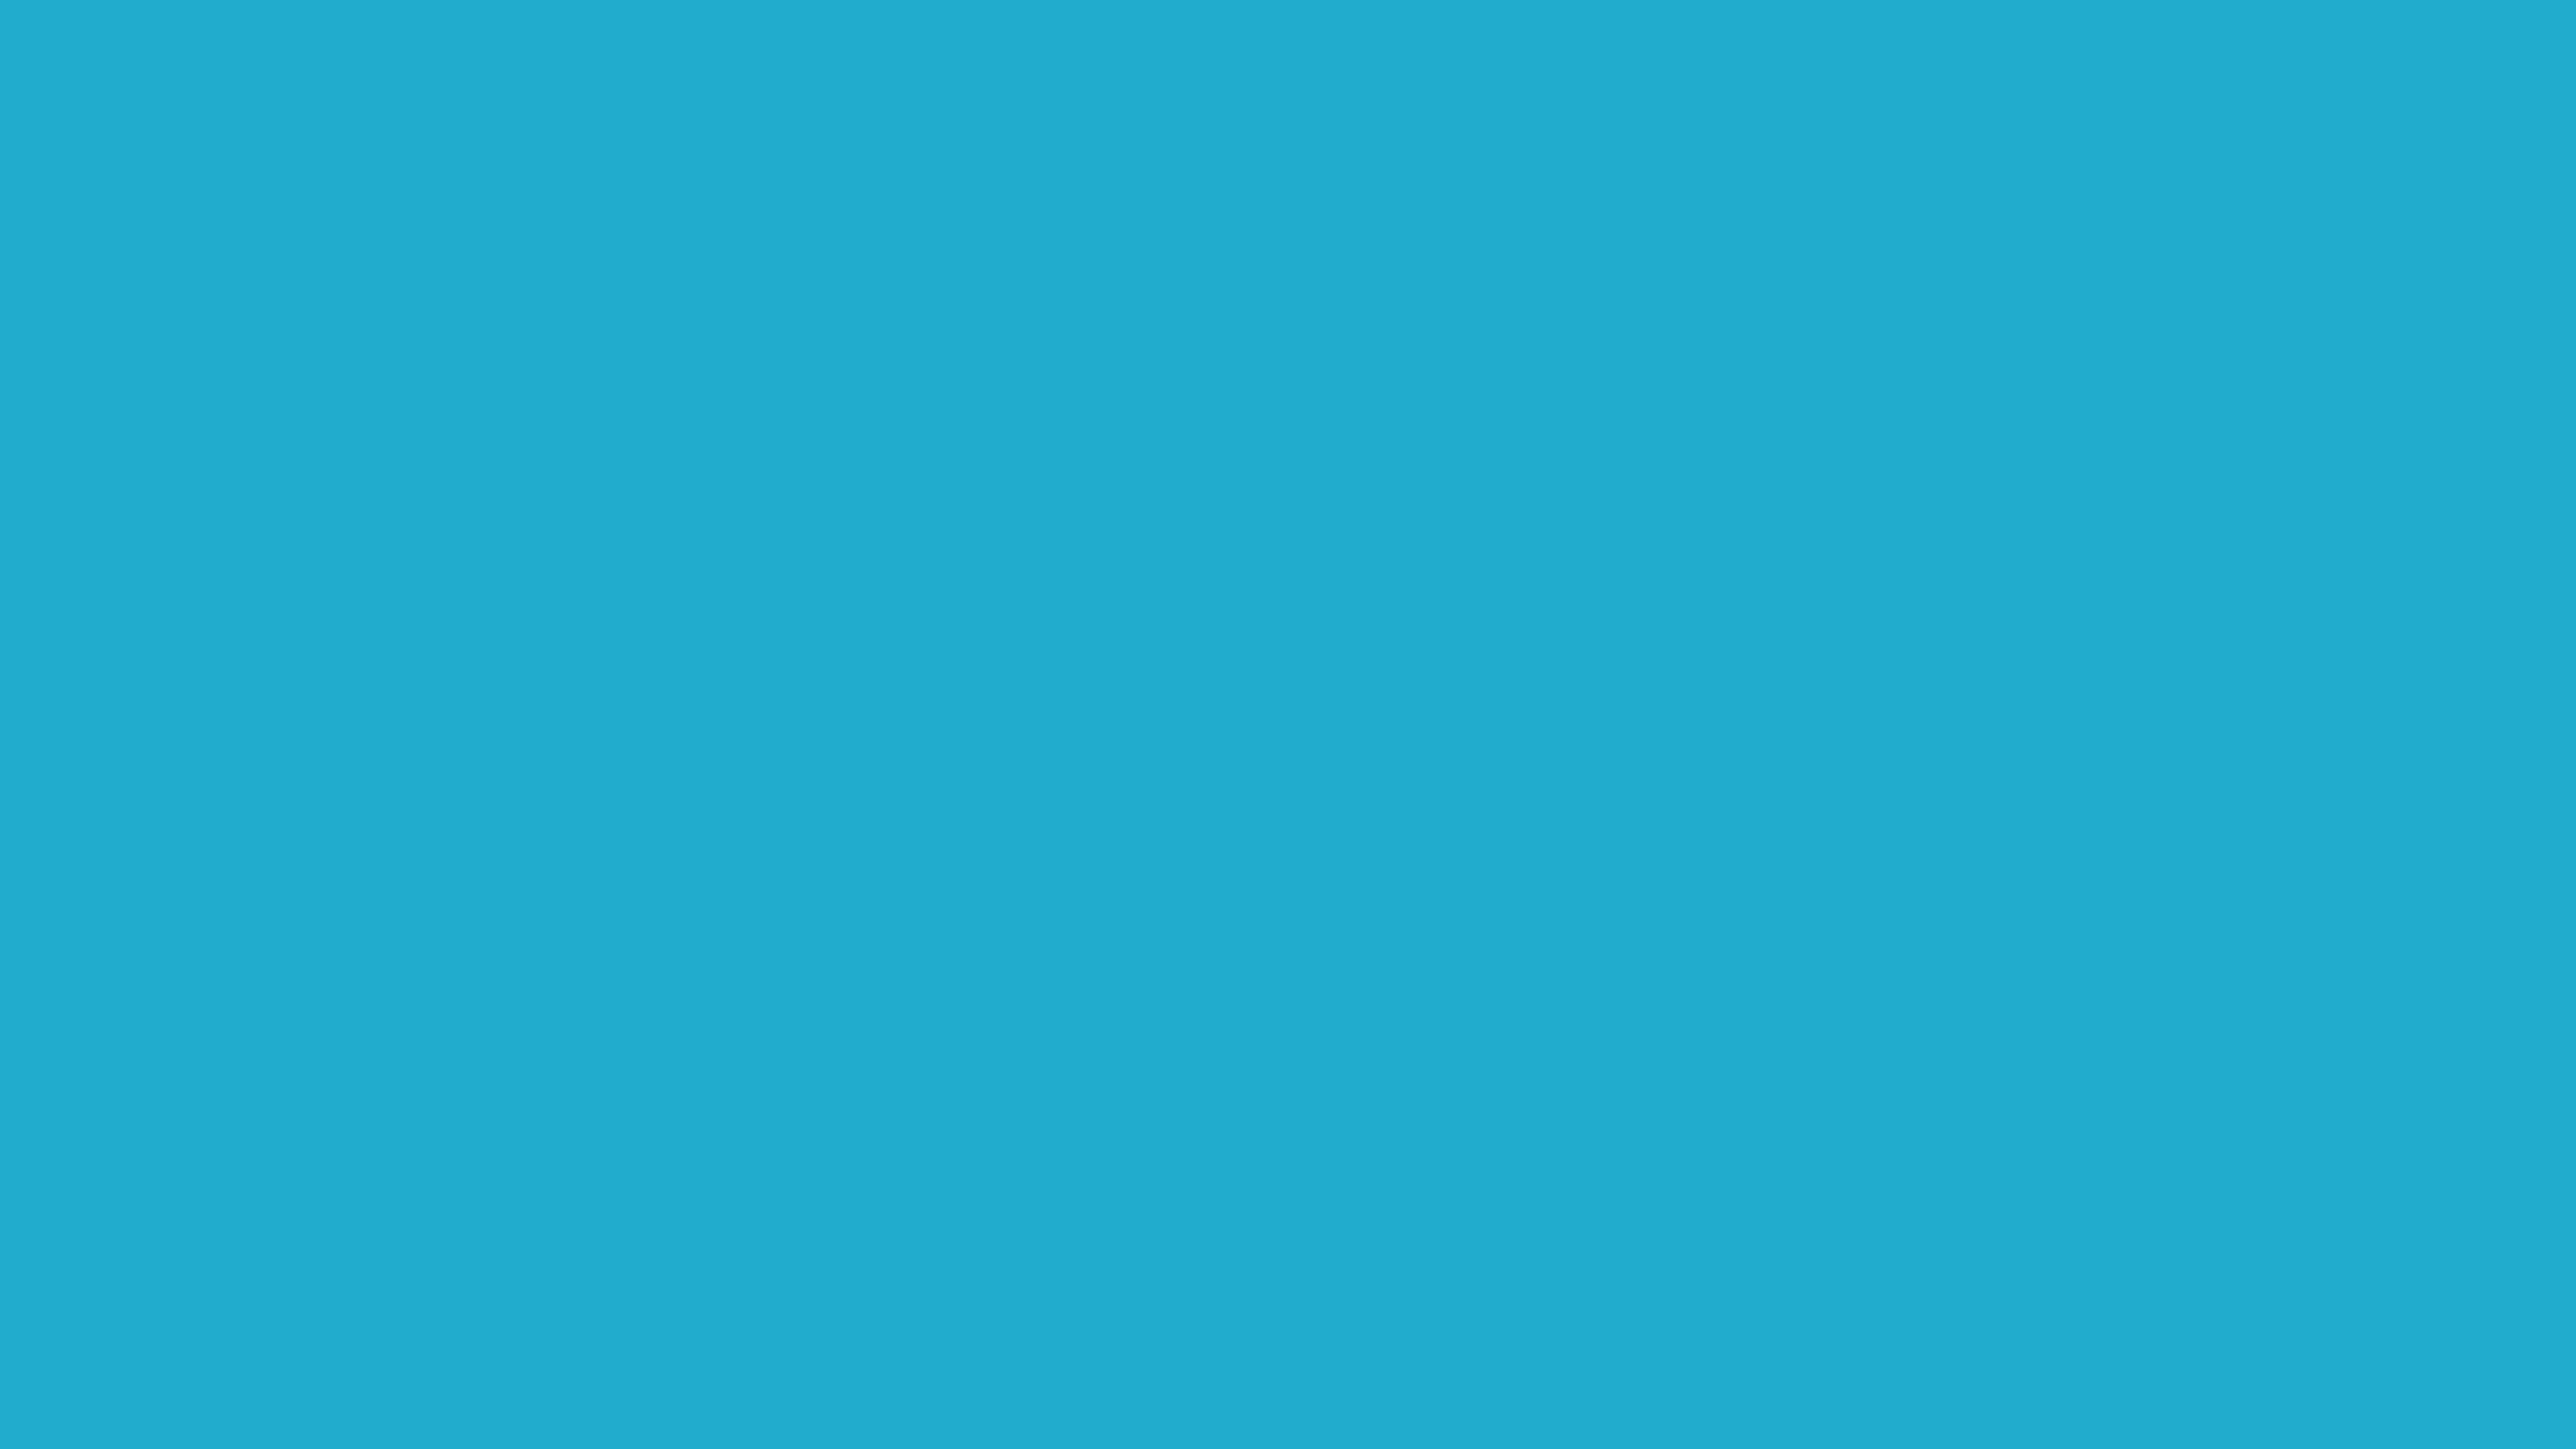 4096x2304 Ball Blue Solid Color Background